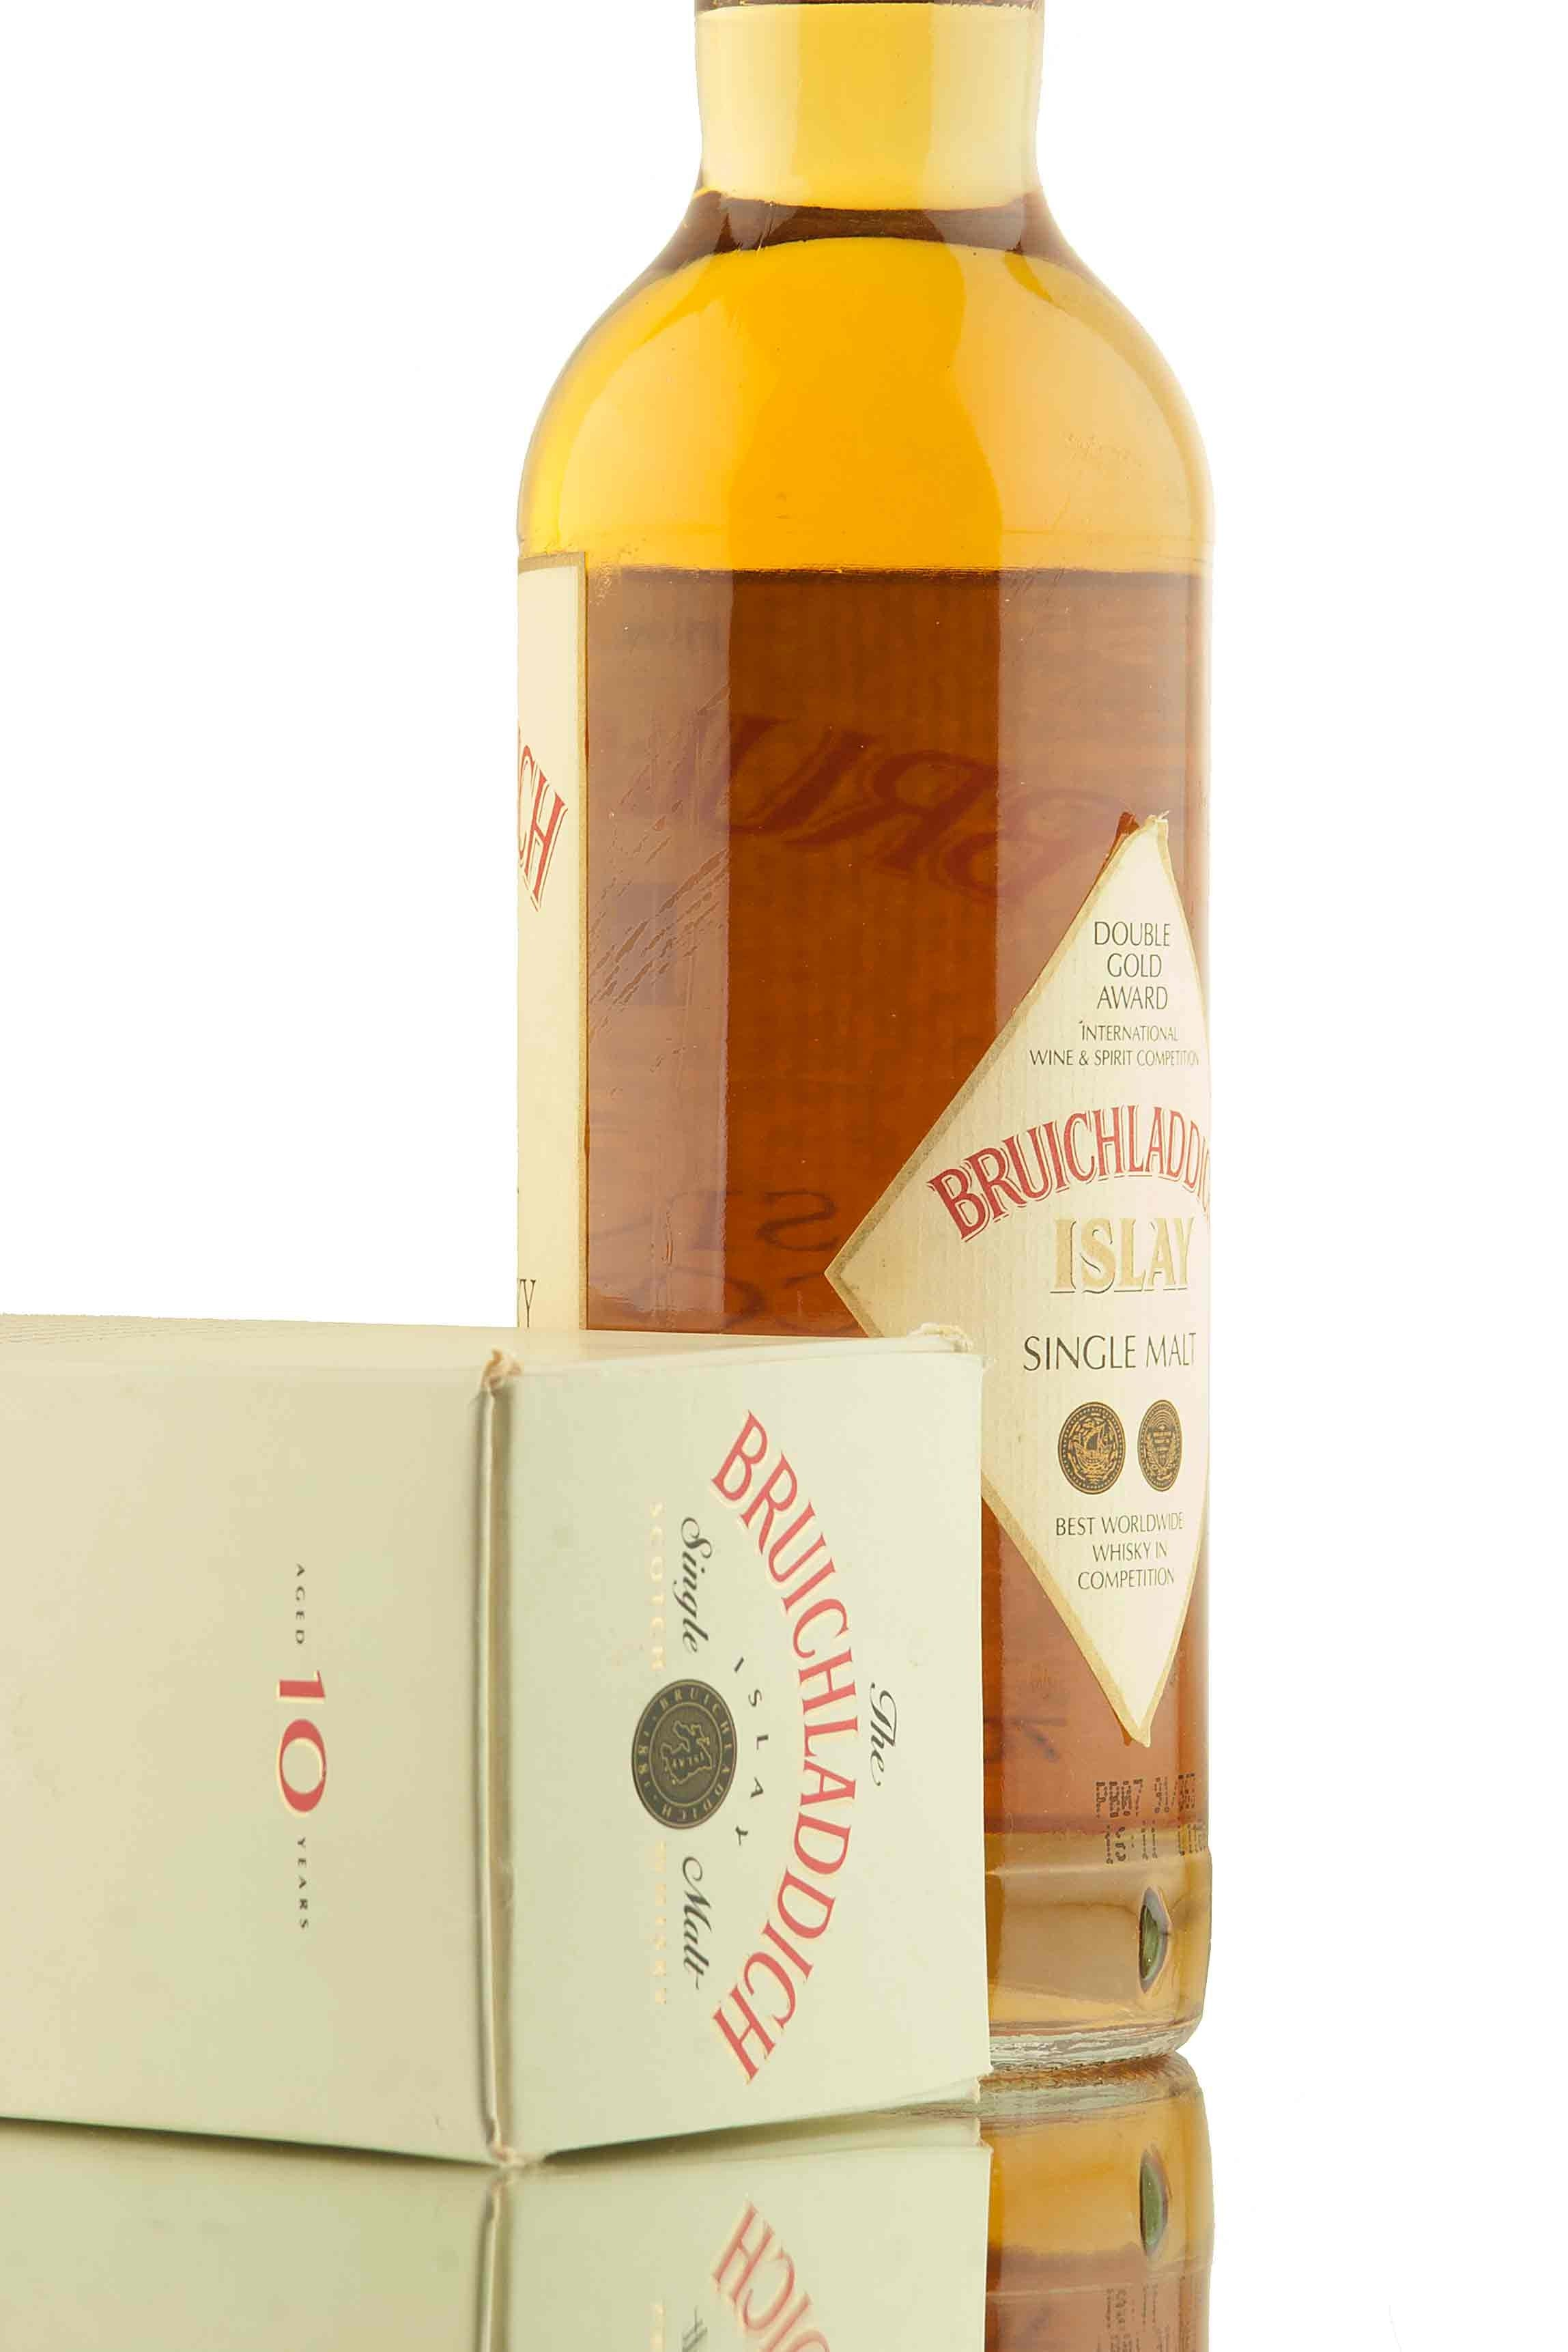 Bruichladdich 10 Year Old - Early 1990's